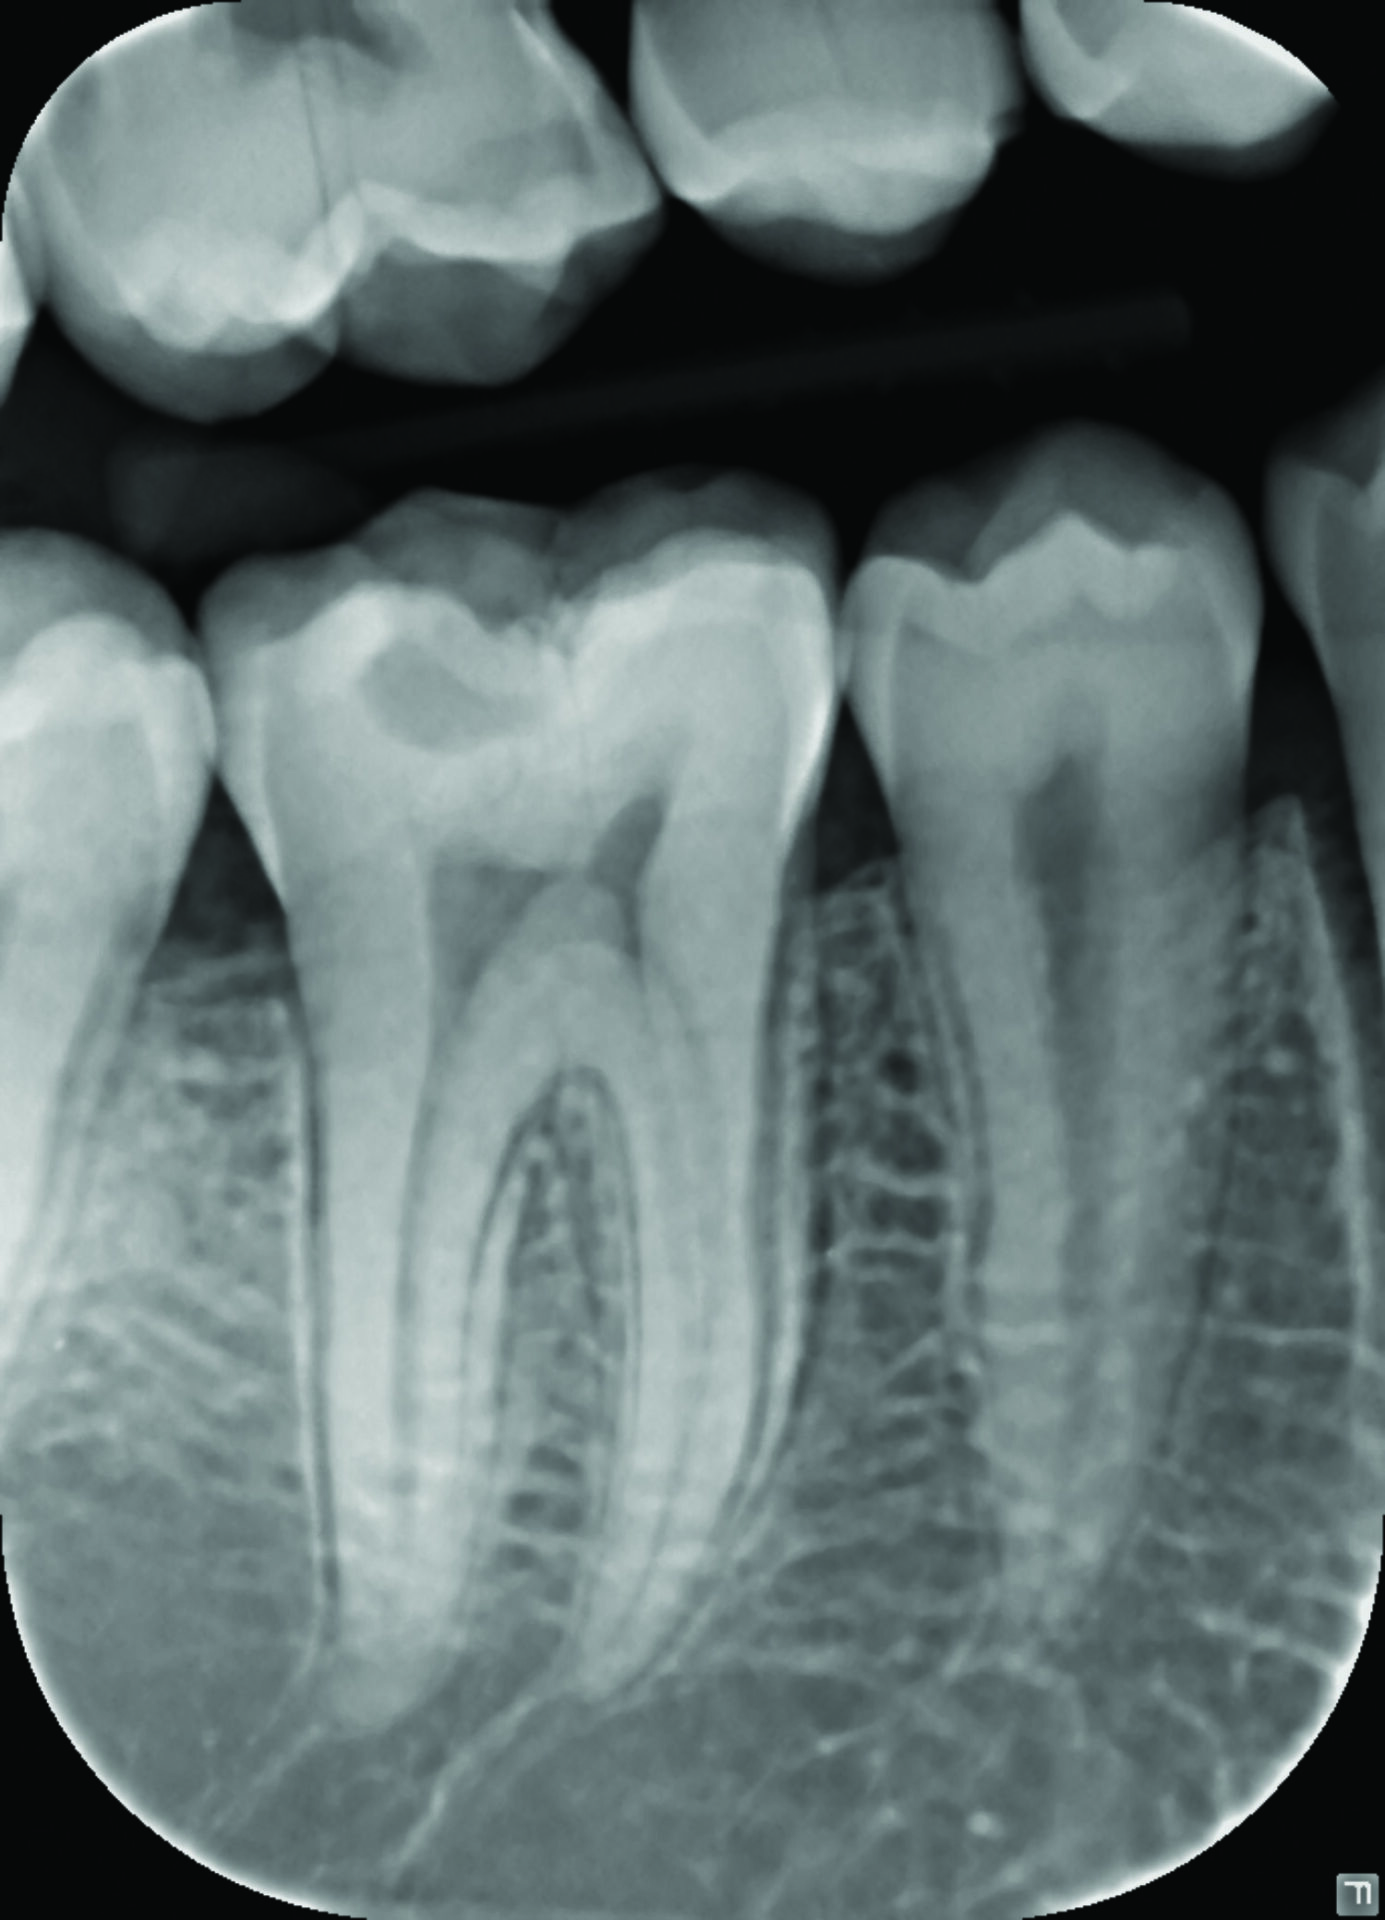 Intraoral X-ray image     PaloDEx Group Oy, Snapshot intraoral sensor (large)     2012-01-09     14:32:54     intra     69a31212-43b7-499b-a7ee-9496f3bf55a3     0     1     CliniView 10.1.0.2     1.2.840.113999.1002.1772294674.1234912183.11769524254126960295     d     0          684     948     7           Snapshot (large)     Intraoral X-ray sensor     Dicc (Dicc.dll 1.6.4)     17     2012-01-09     14:32:54     3200000316486f2d     3200000316486f2d     0     0     V01/PAG=d2954e4a-eb6e-4dd7-97f4-e4291eb35869/STG=d31bd7be-f737-4e12-92b1-ed64b5a3f88d/SEG=3f51f63b-5256-4a37-b337-75d1680a9bf7     110488     0.038     0.038     <Attribute name